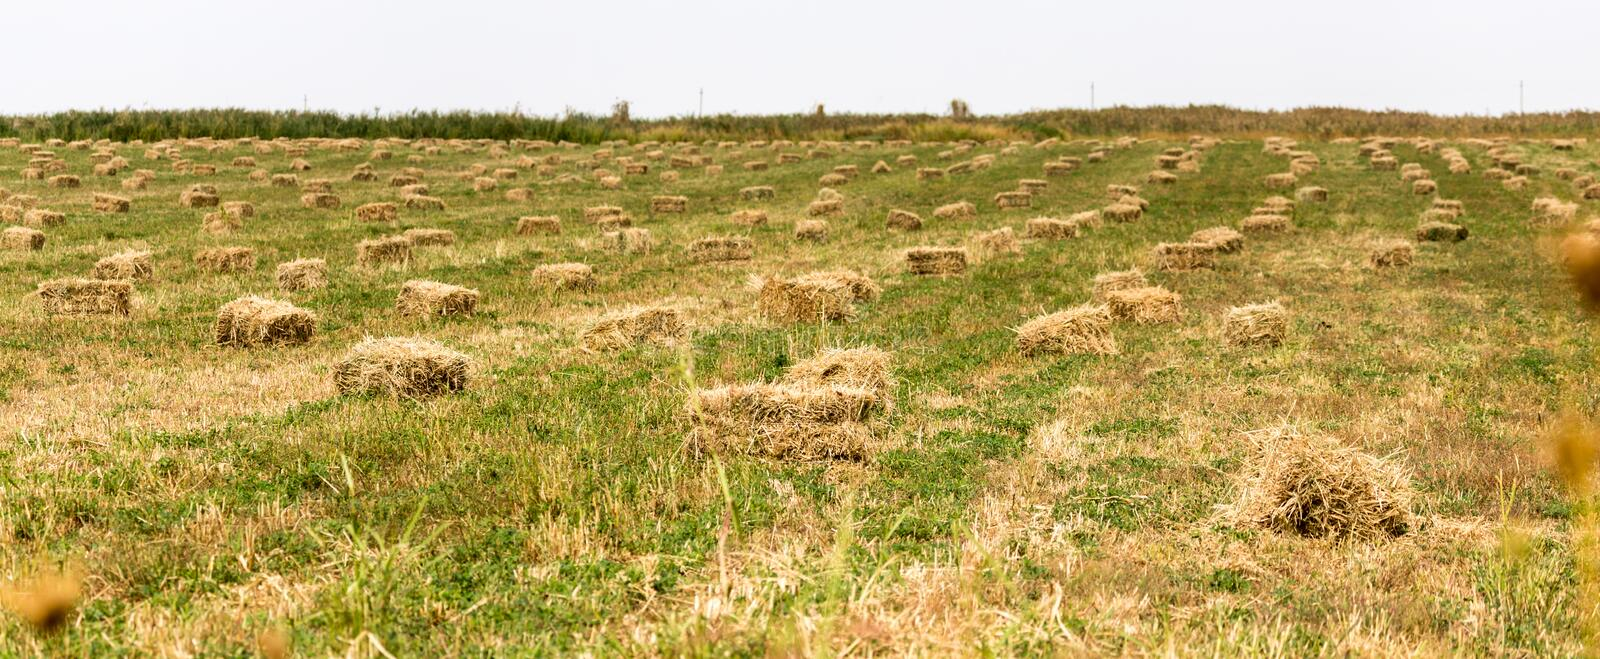 Bales of hay in the field royalty free stock images